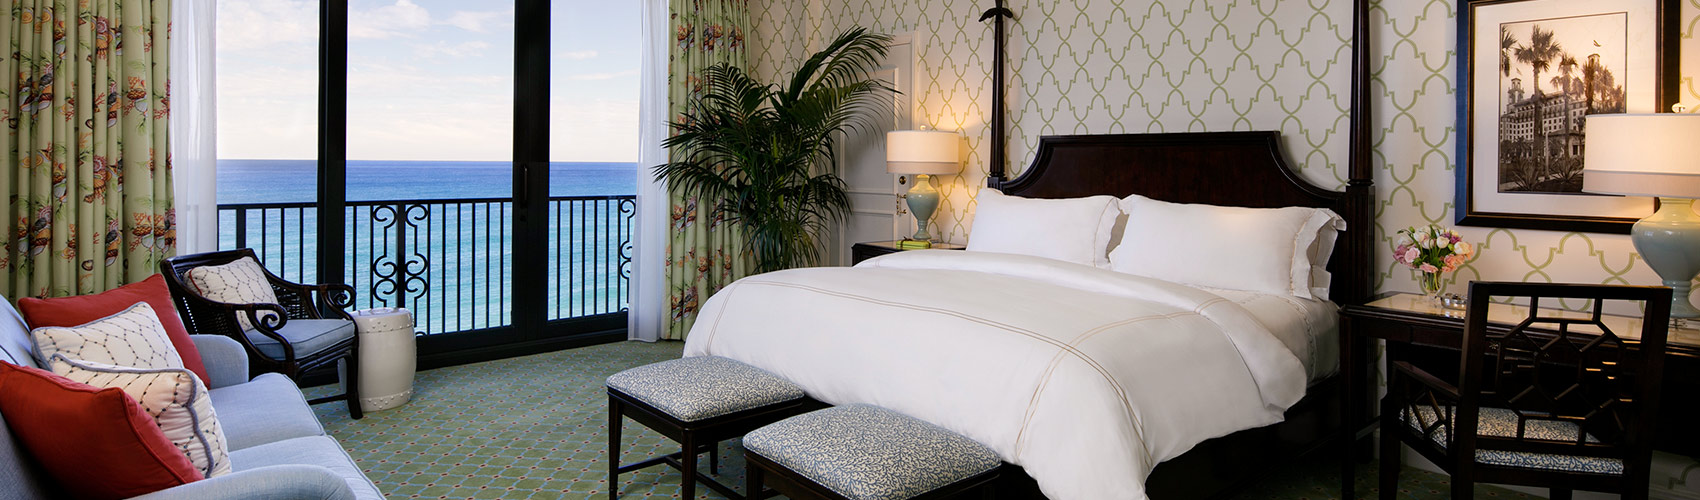 Atlantic Guest Room with Oceanfront View and King Bed